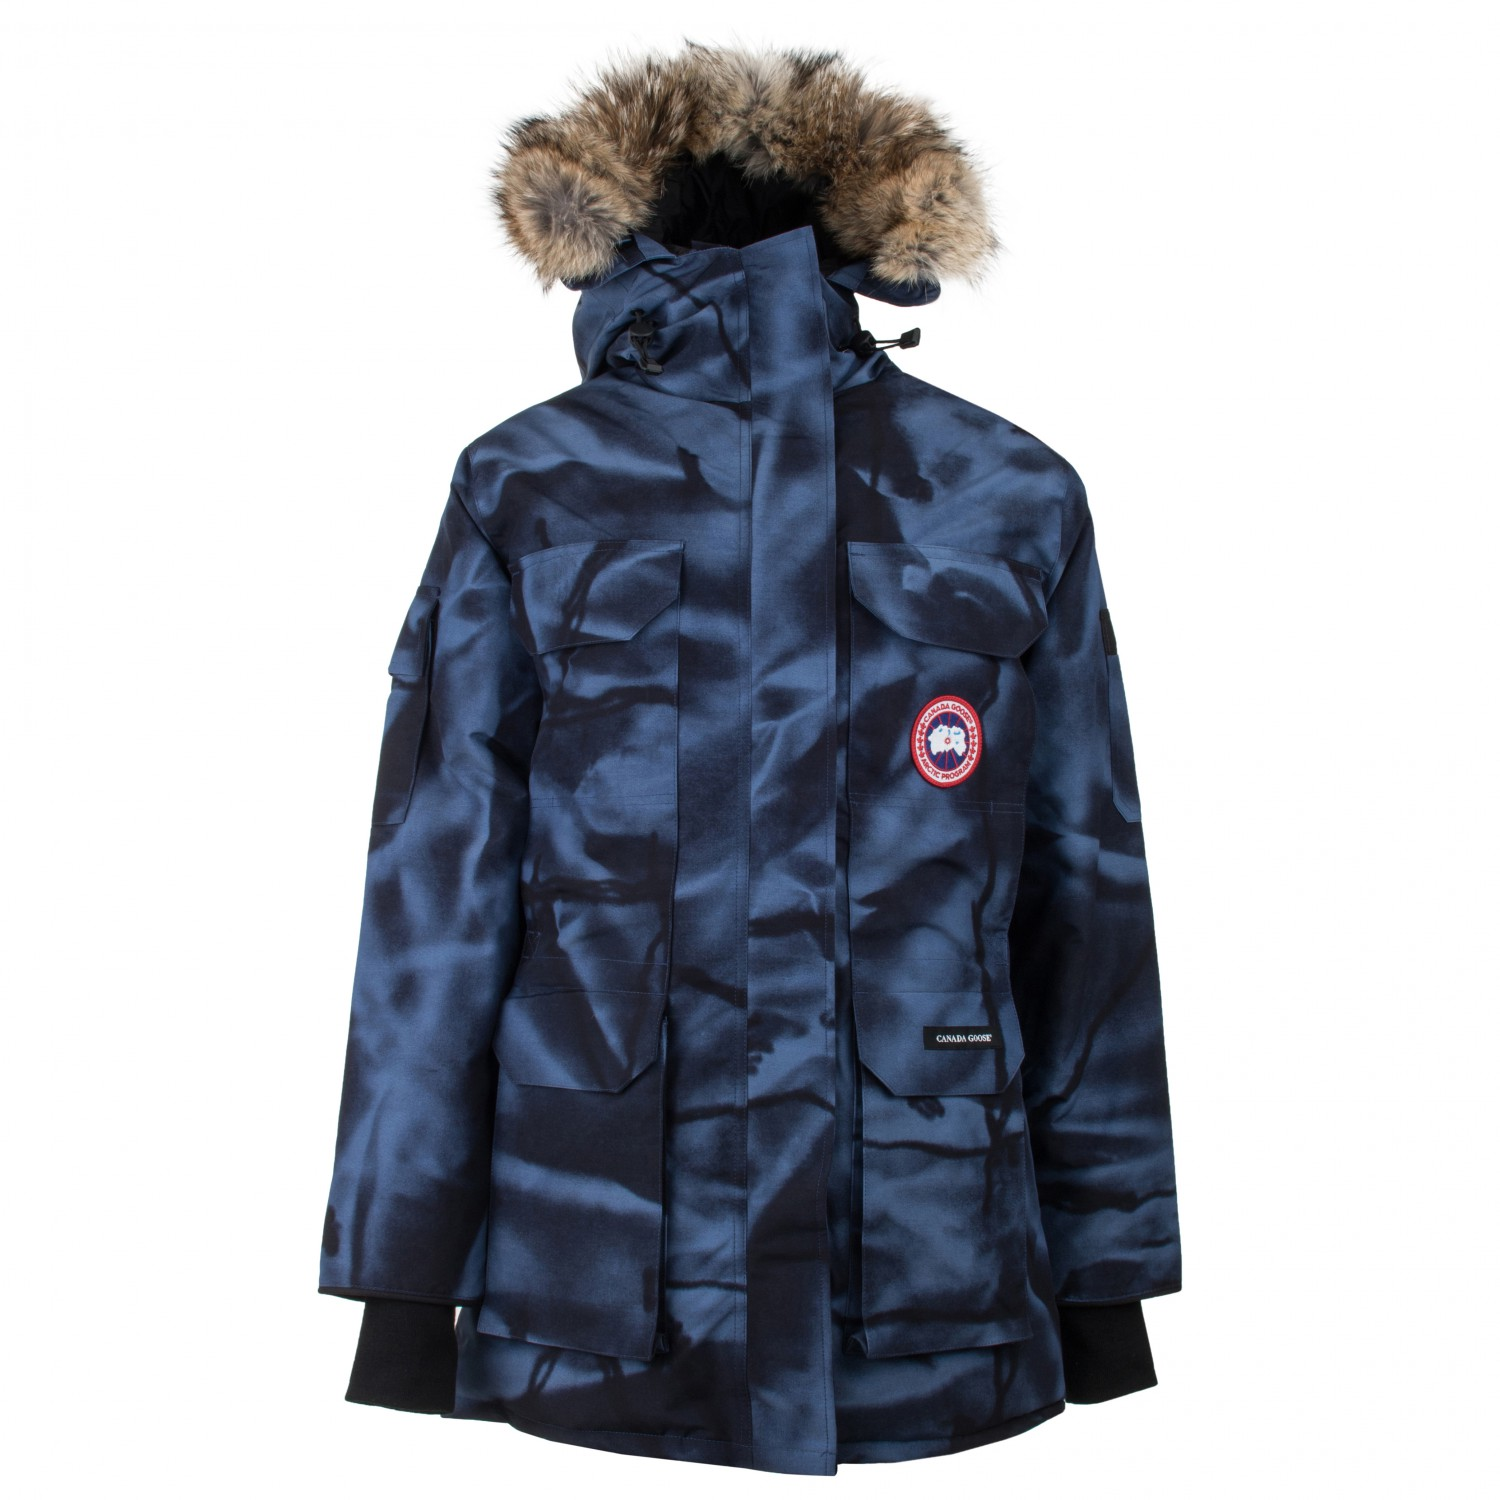 buy online 28a1b 2dbea Canada Goose - Women's Expedition Parka - Winter jacket - Black | XXS